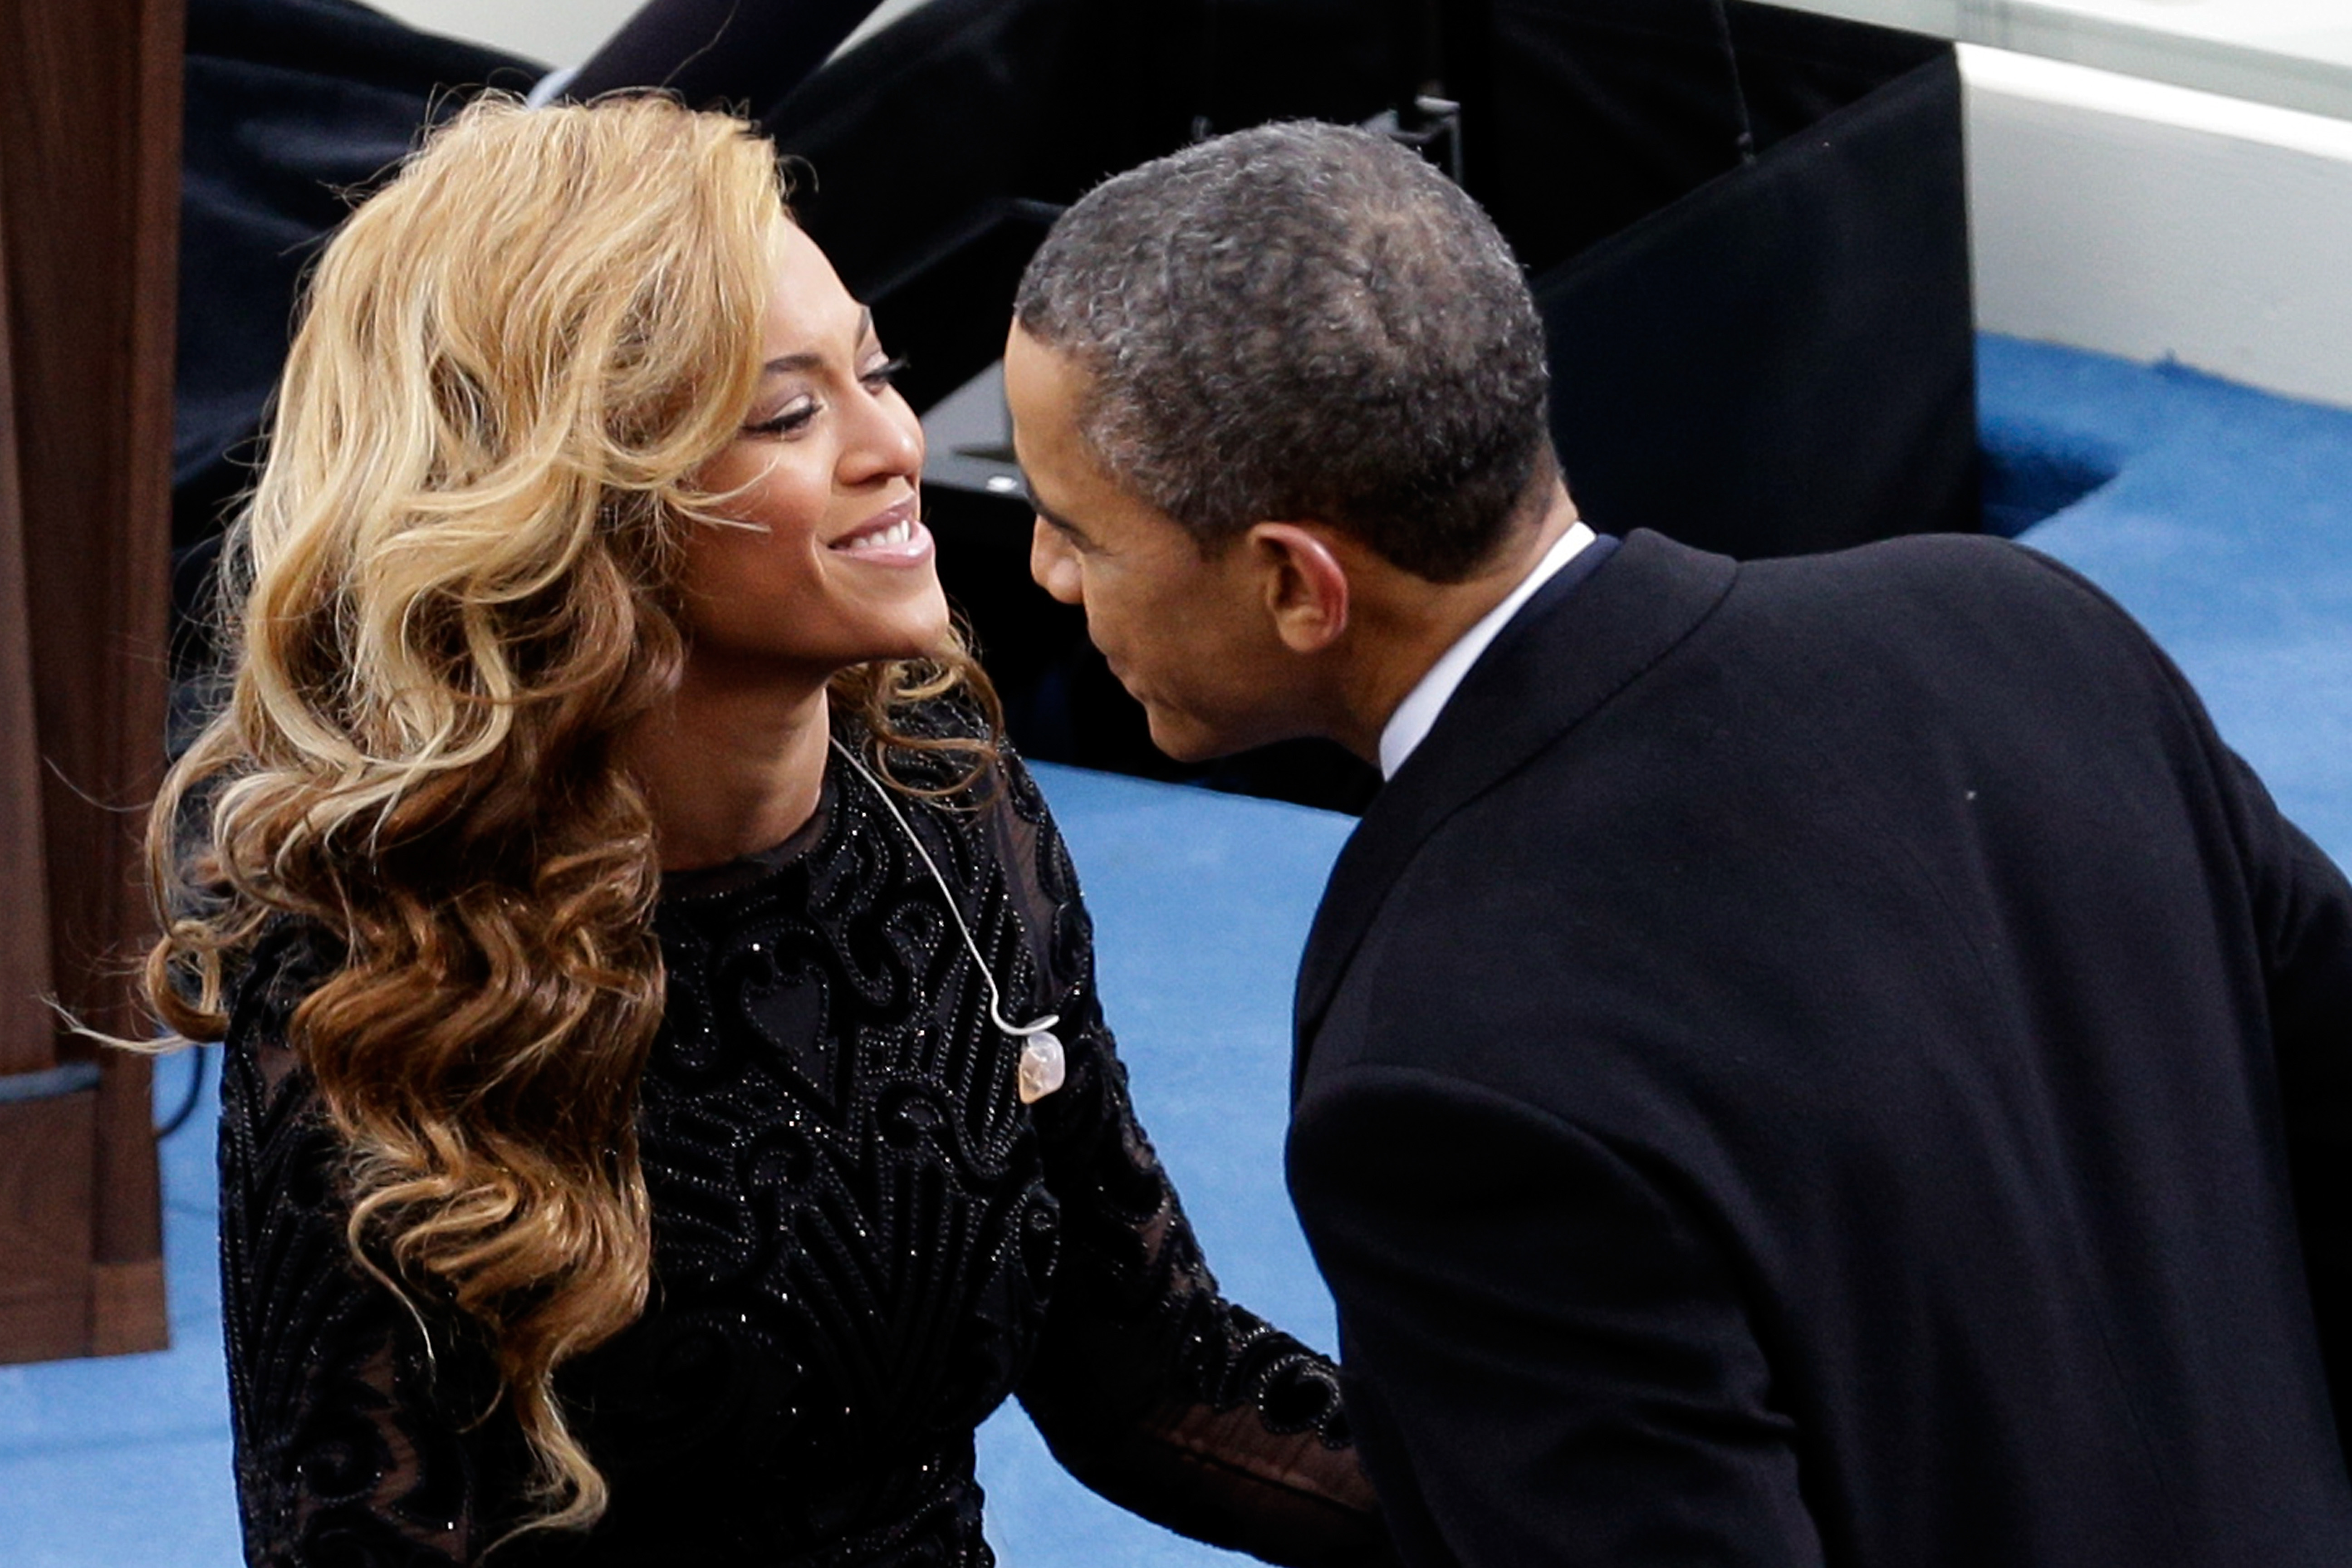 President Barack Obama and Beyonce at the Inauguration on January 21, 2013 in Washington, DC.